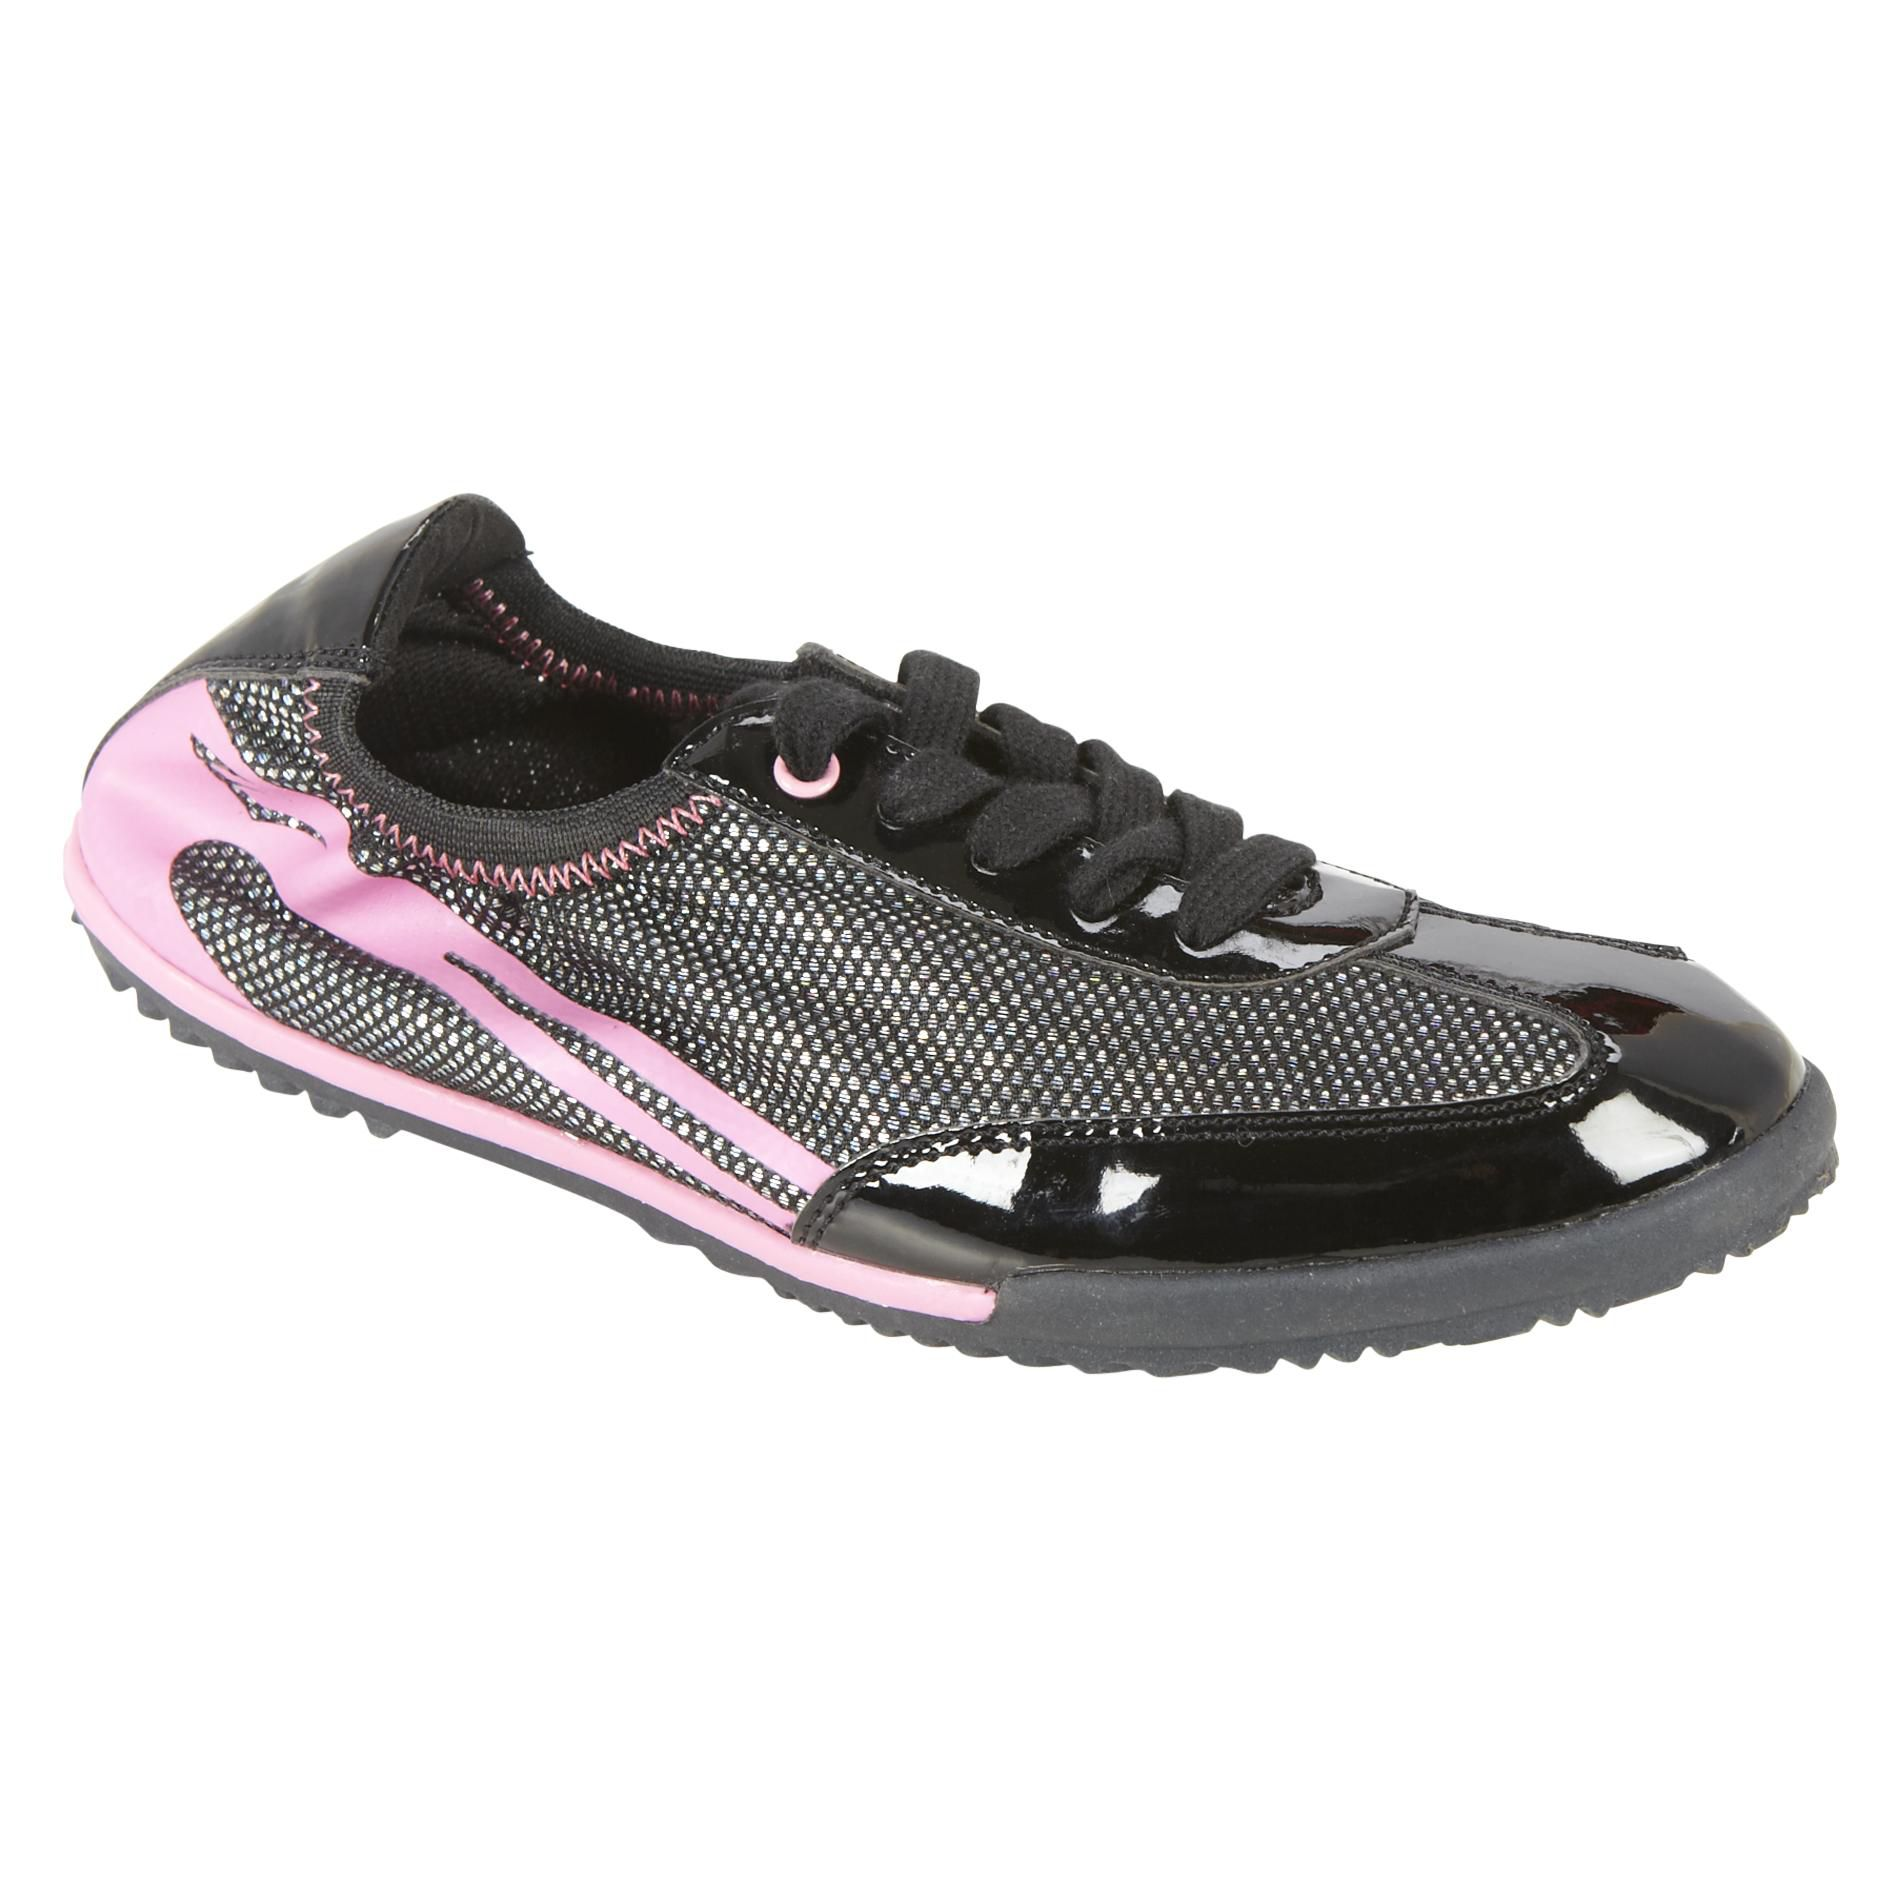 Women's Athletic Shoe Layne 2 - Black - Every